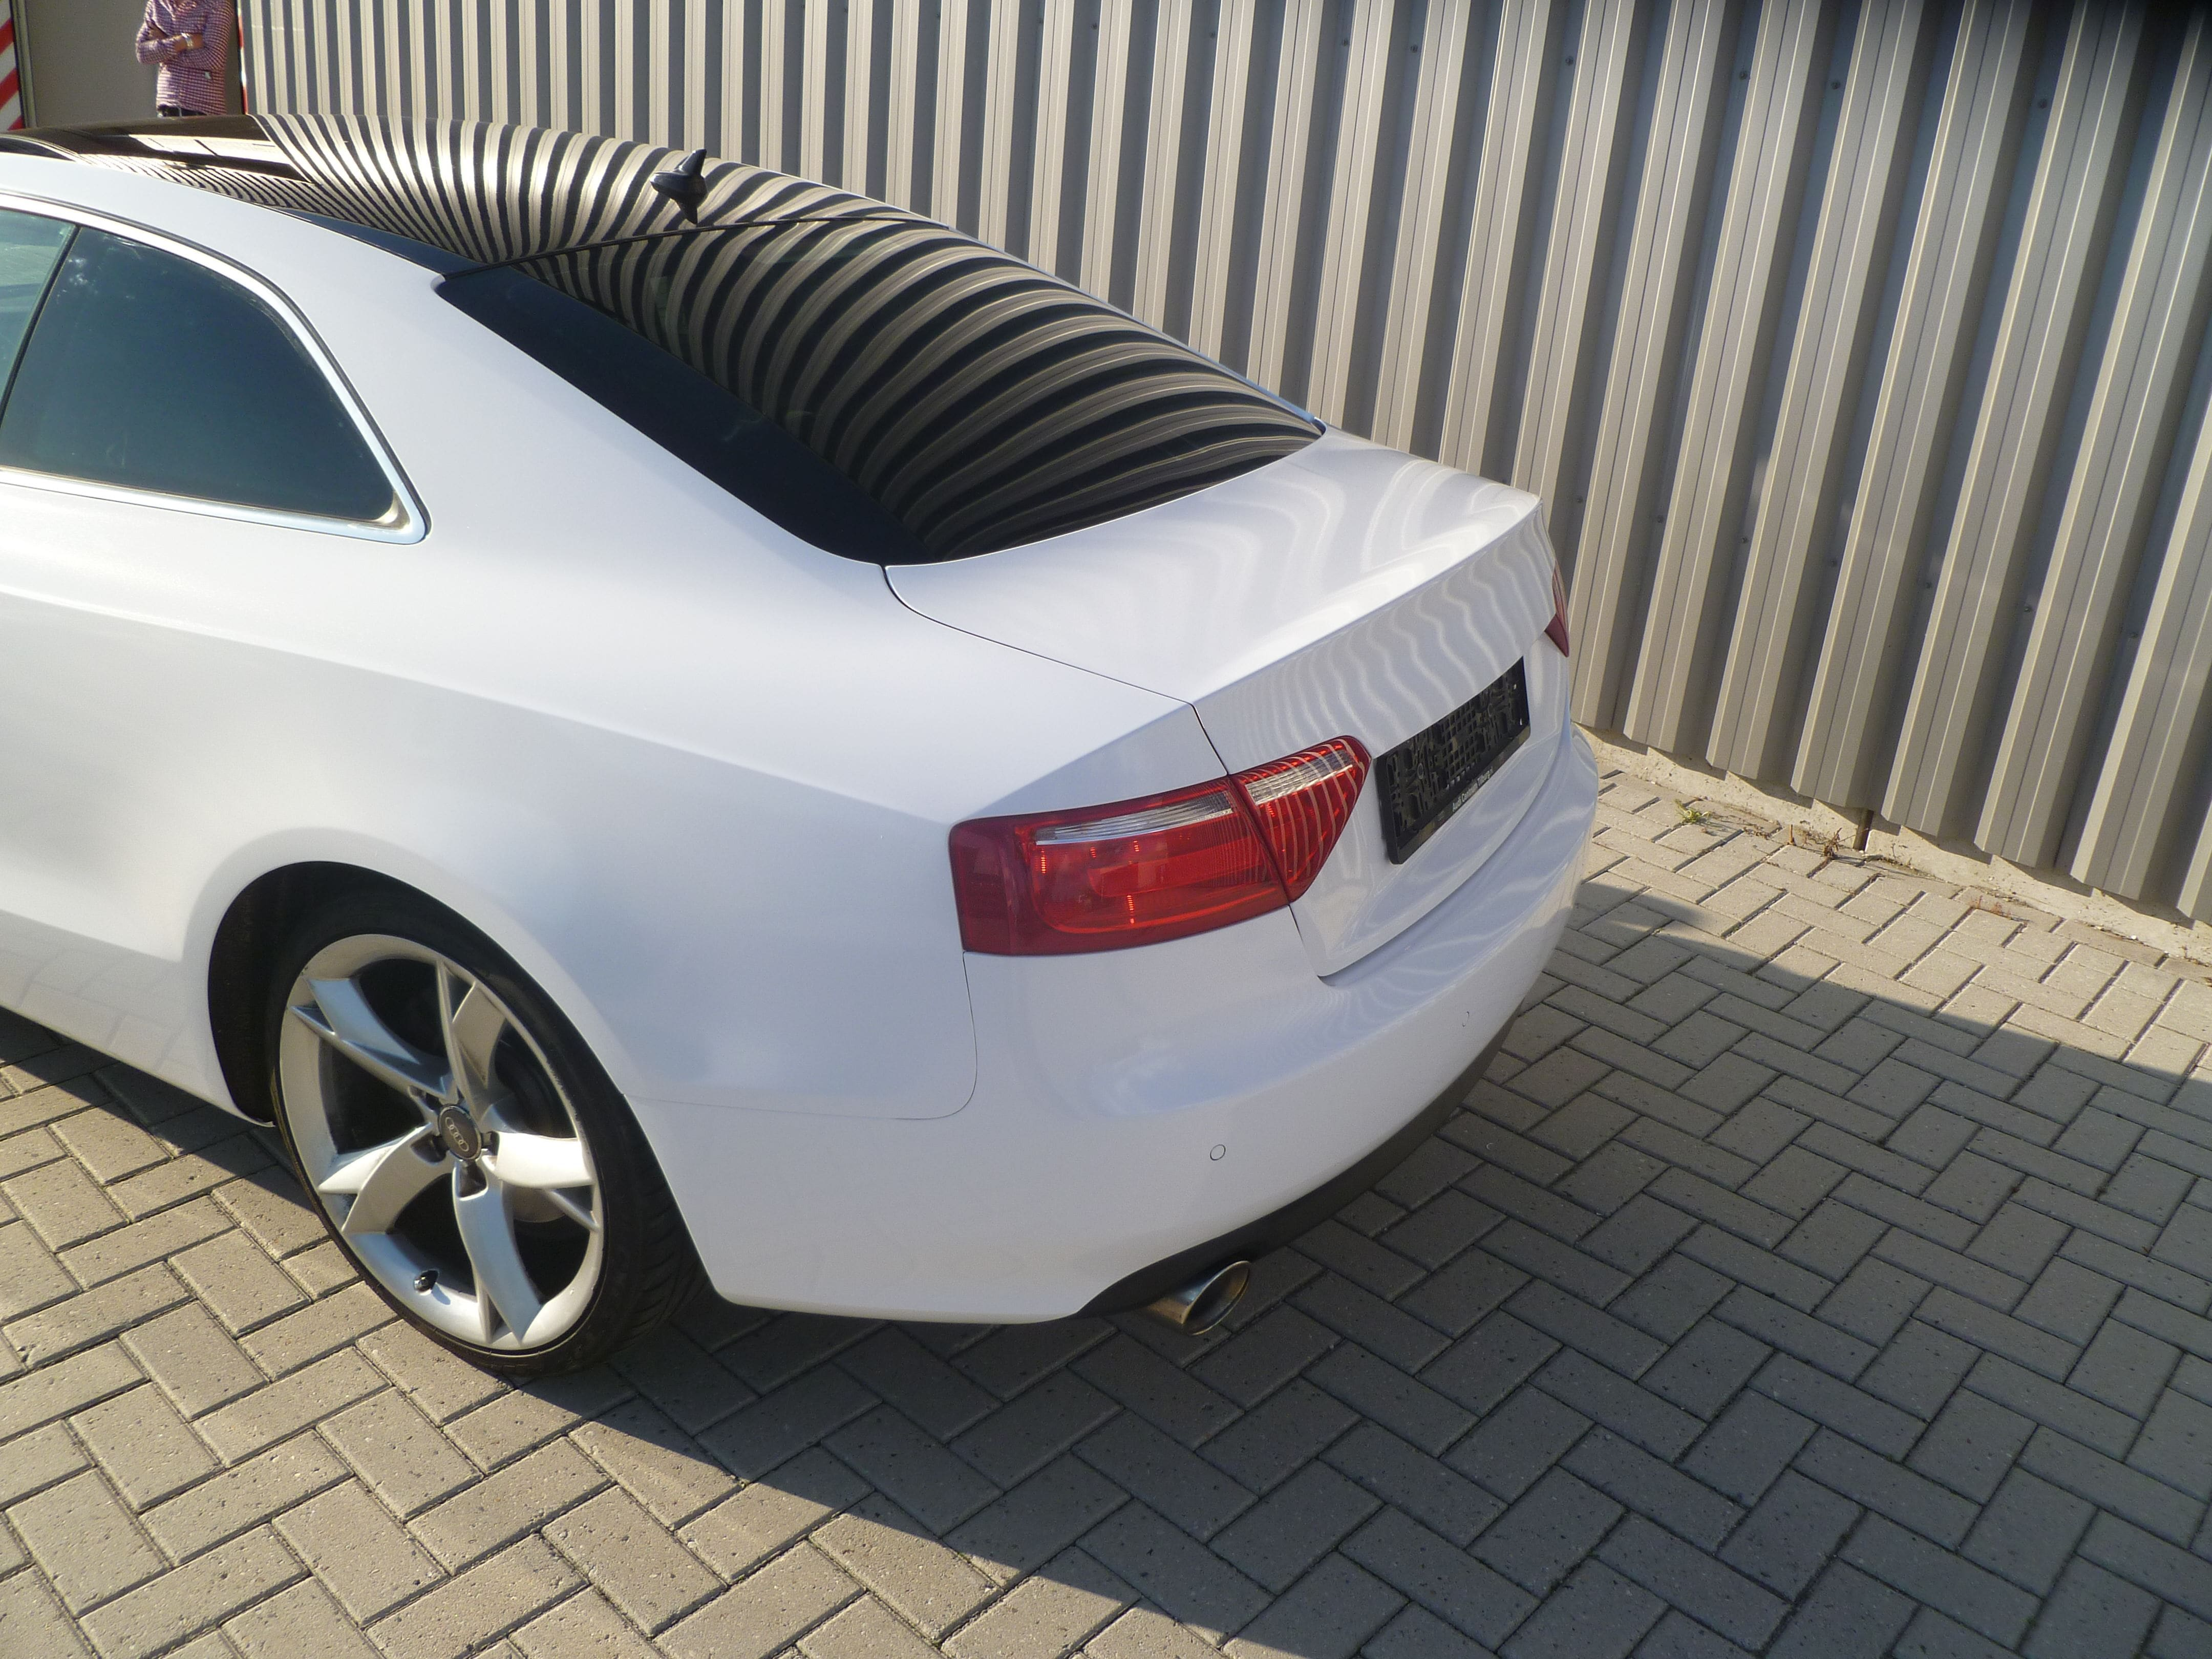 Audi A5 coupe met Metallic Witte Wrap, Carwrapping door Wrapmyride.nu Foto-nr:4747, ©2020